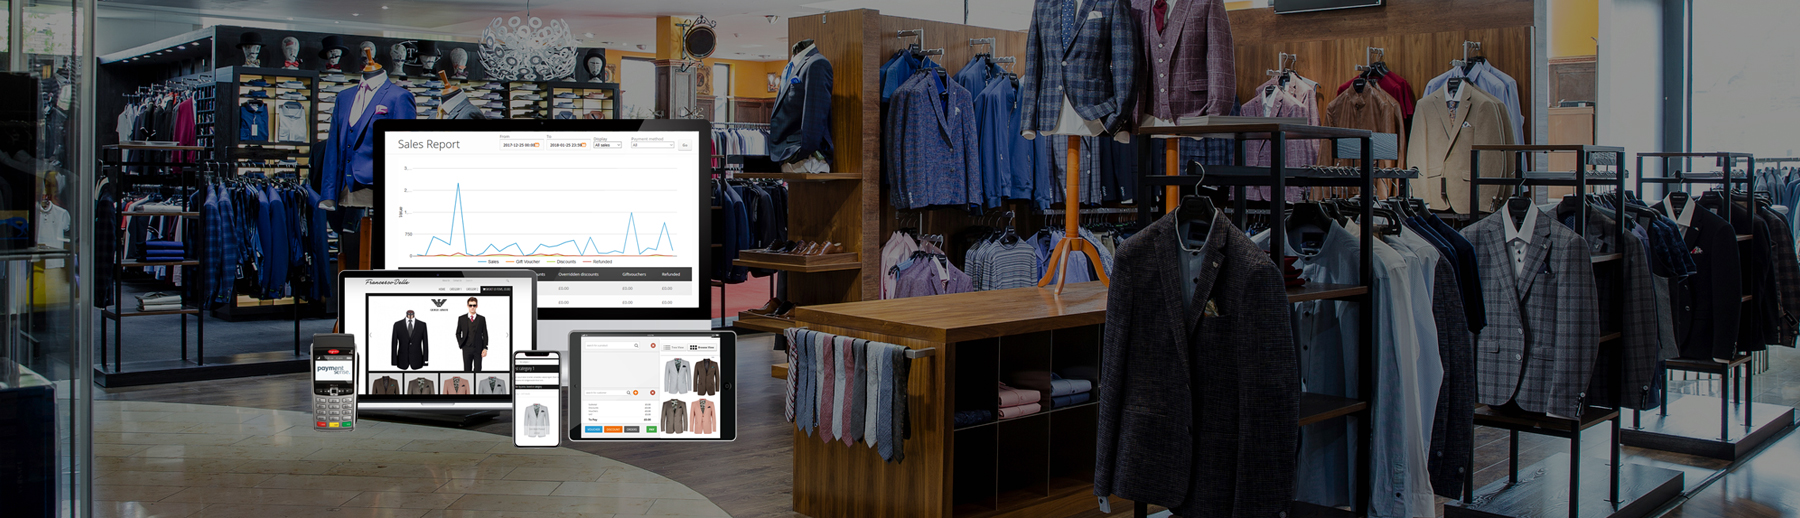 How does multichannel retailing benefit both merchants and customers?